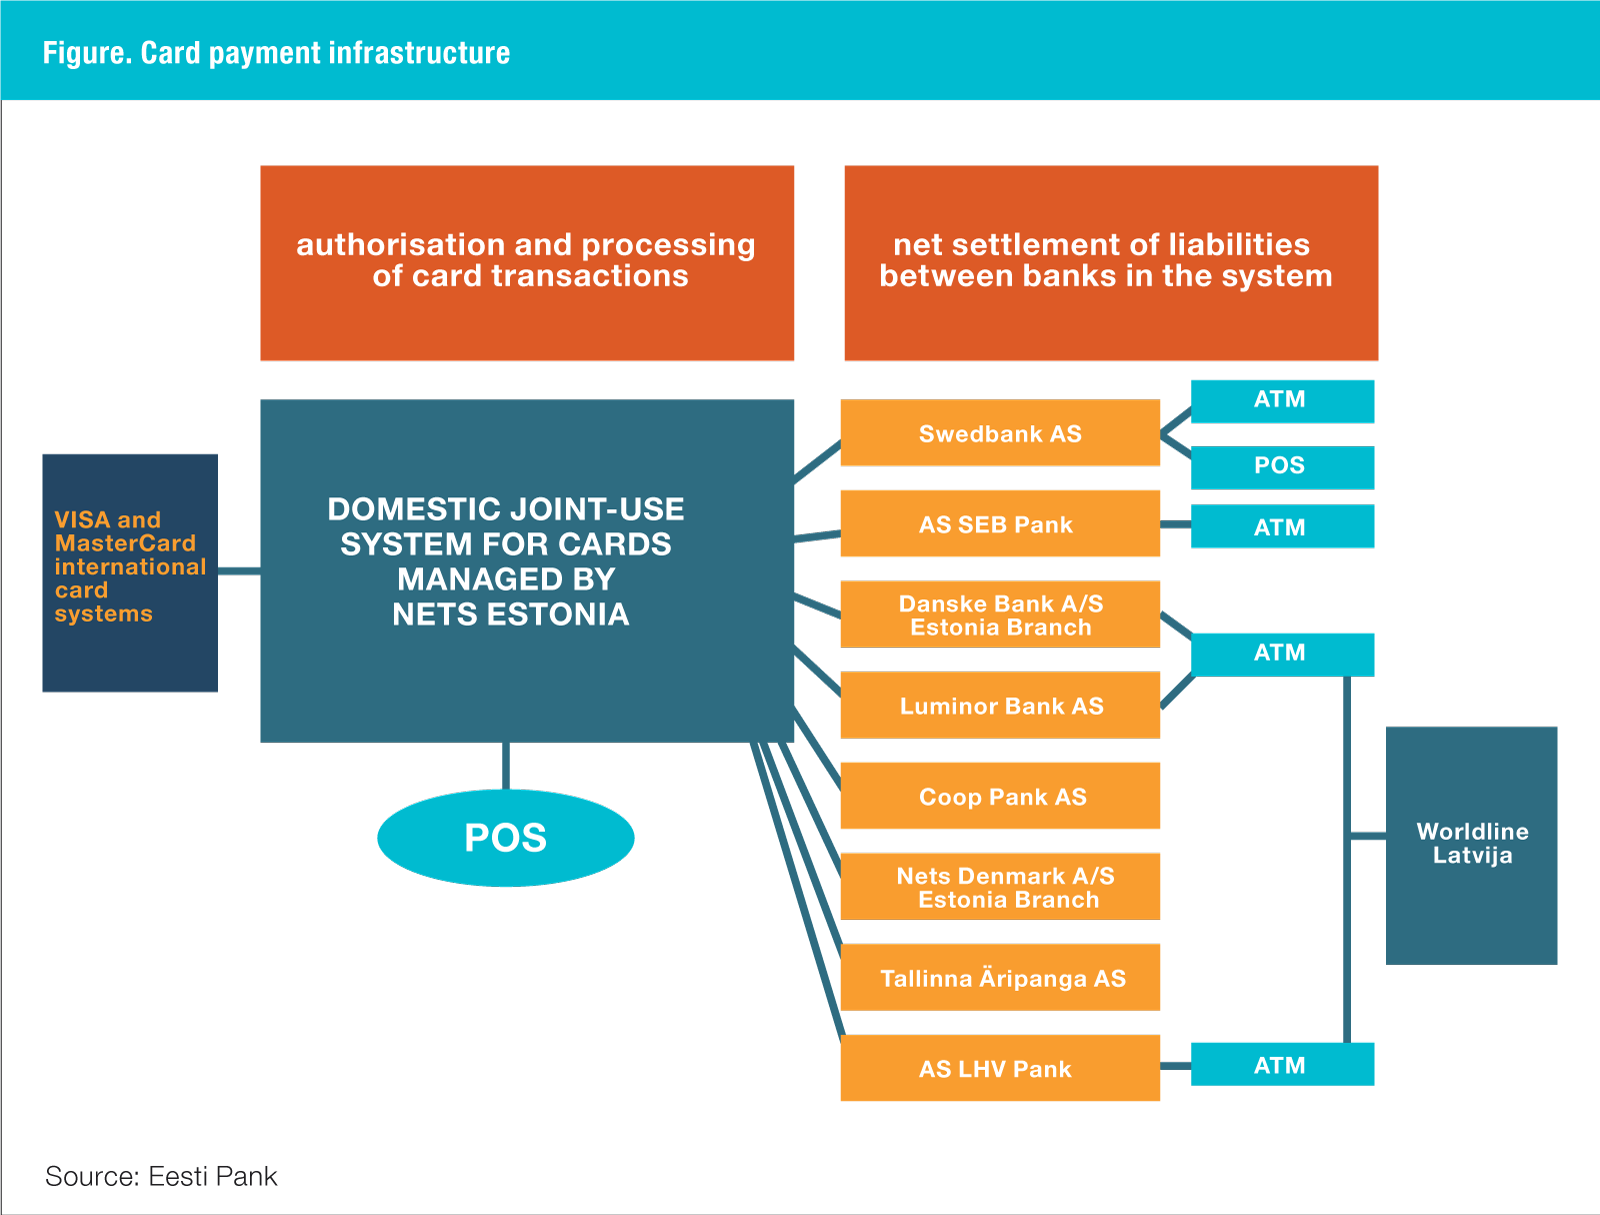 Card payment infrastructure